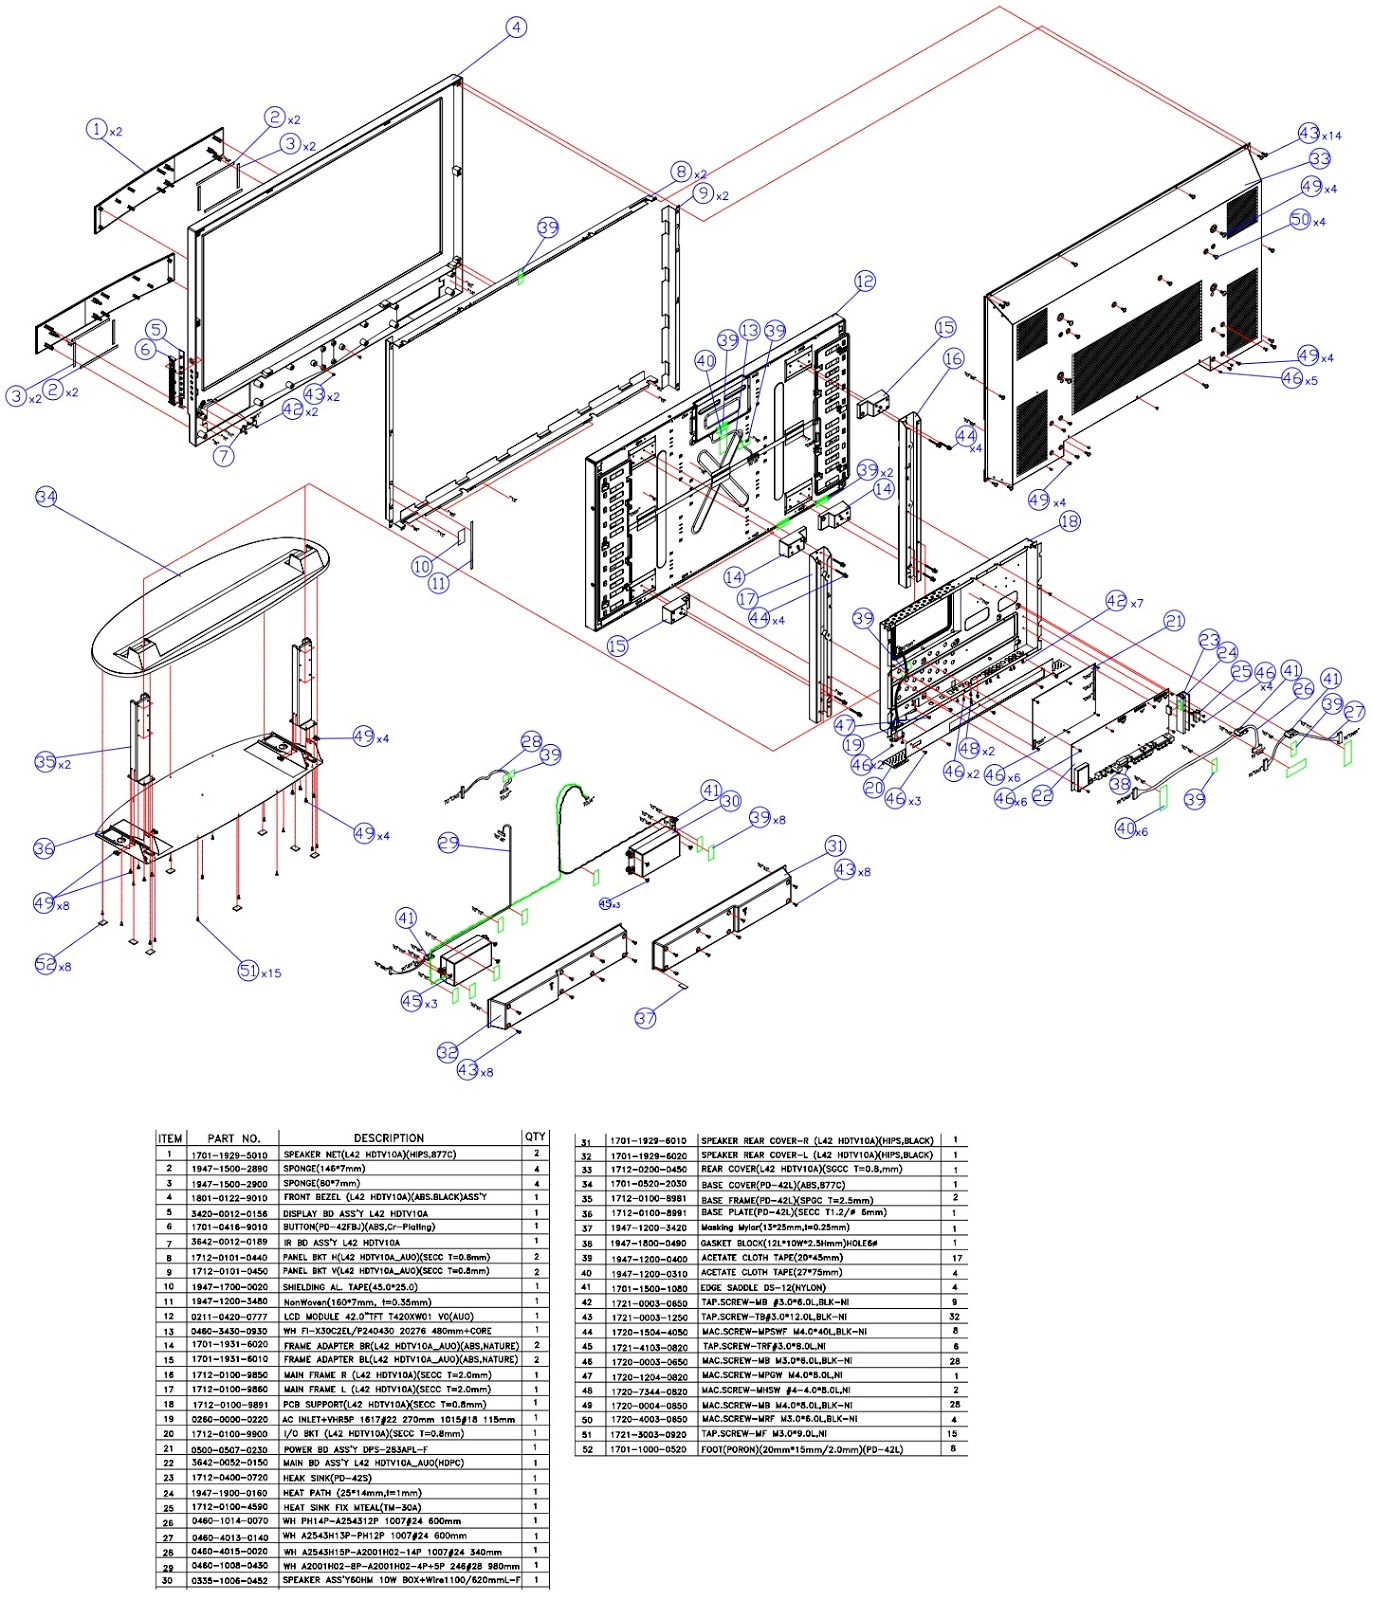 Pictures Of 1987 Buick Grand National 38 Turbo Vacuum Diagram Fixya